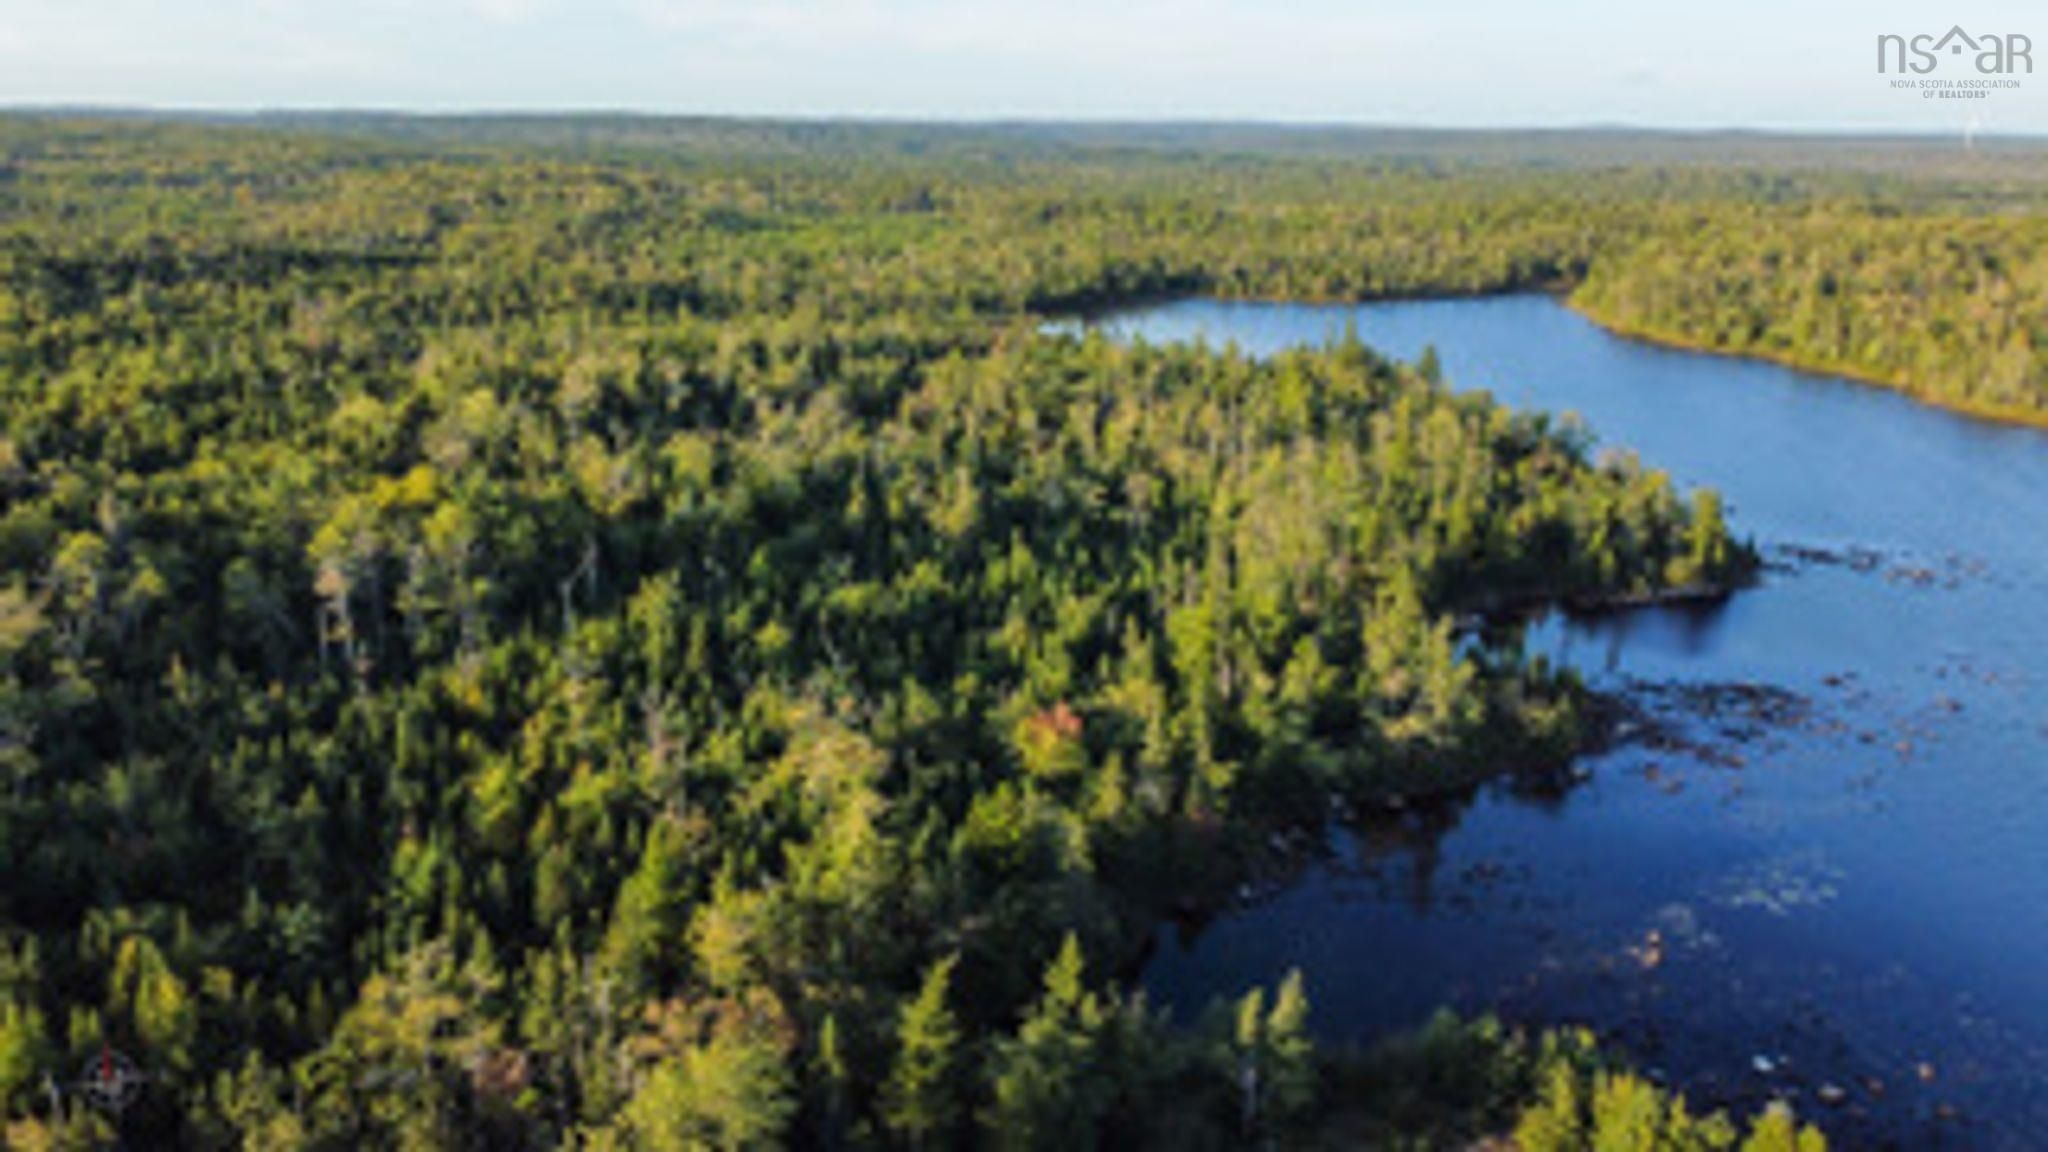 Main Photo: Lot 4 Frog Lake Road in Mineville: 31-Lawrencetown, Lake Echo, Porters Lake Vacant Land for sale (Halifax-Dartmouth)  : MLS®# 202124937